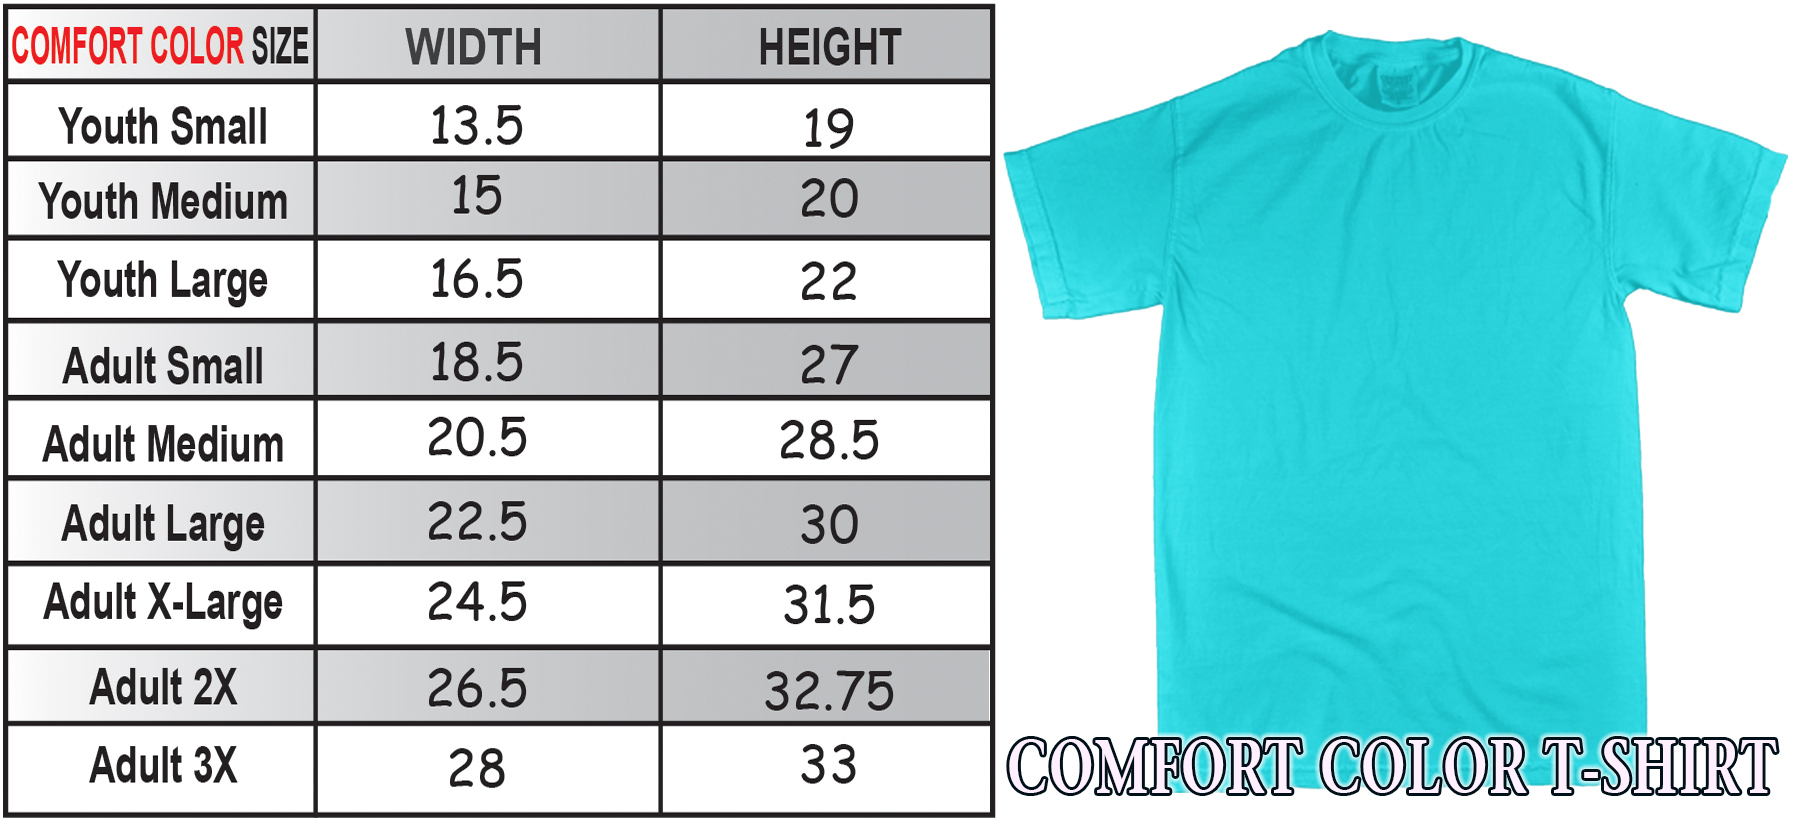 Comfort Color Sizing Charts